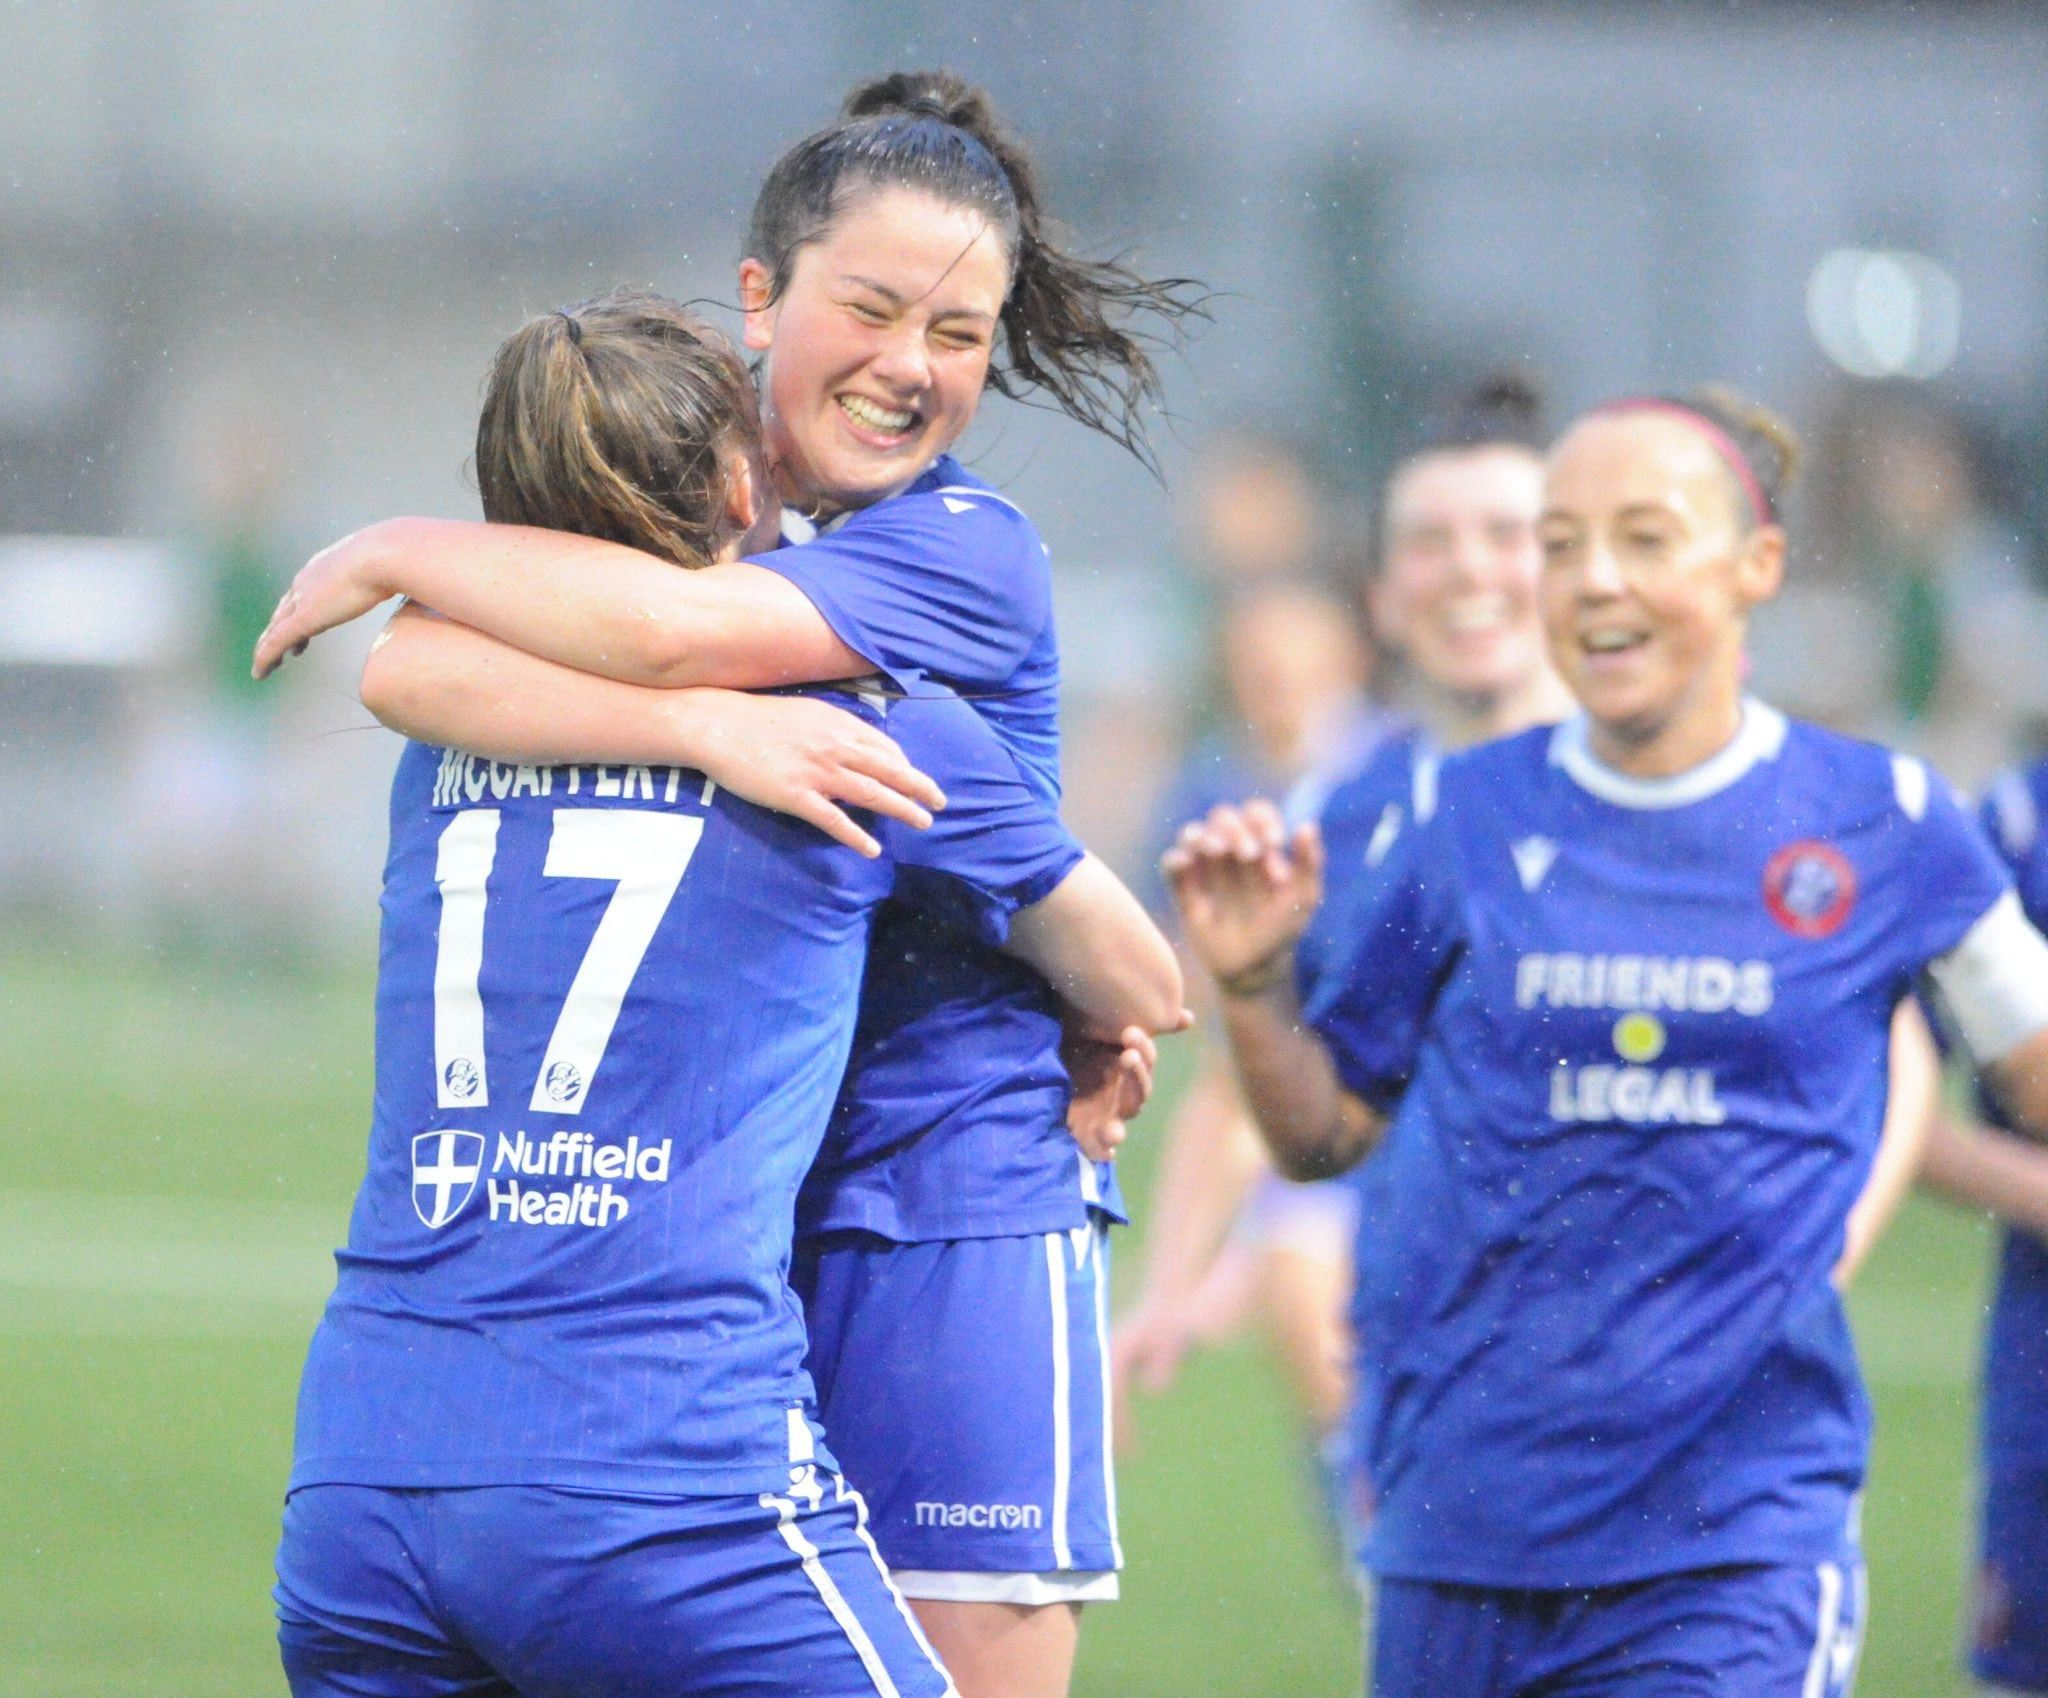 Gibb, Gibb, Hooray! Spartans stay in 4th spot in share of the derby spoils.